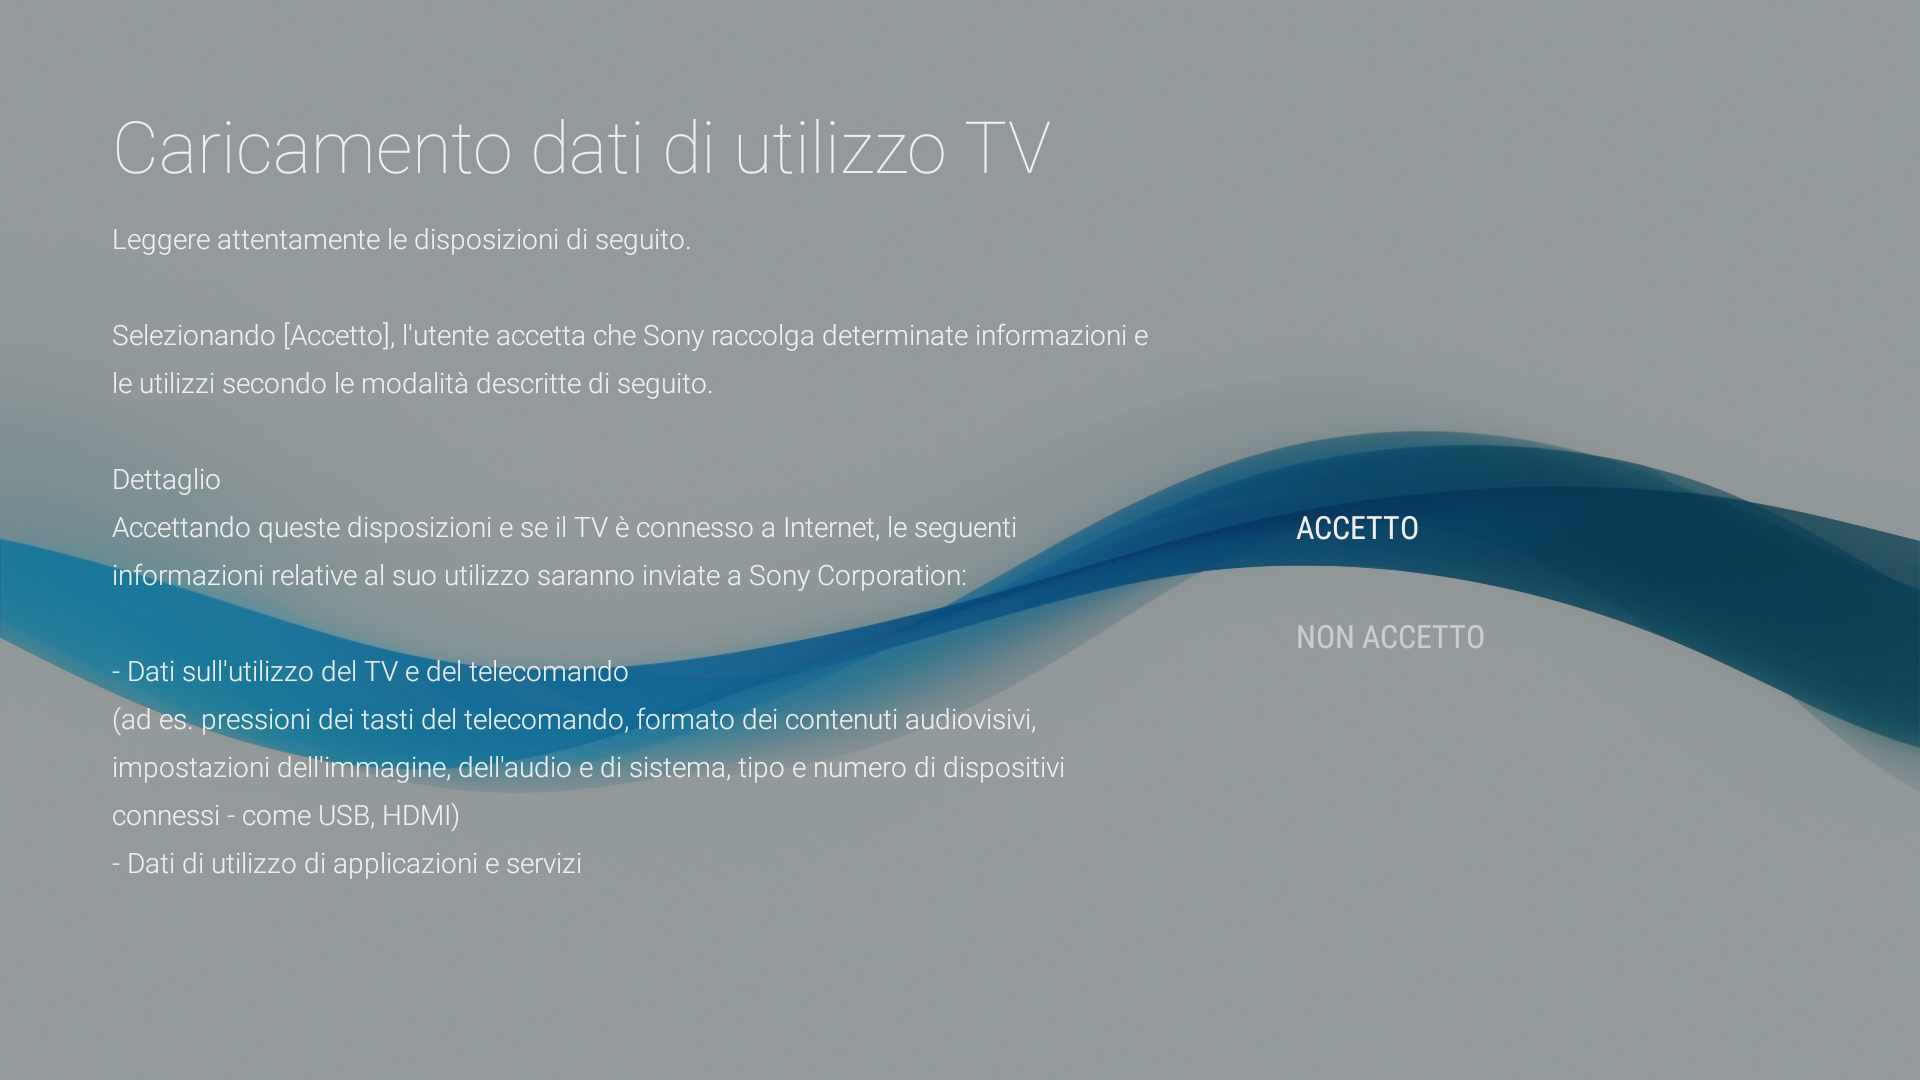 Android - Carica uso TV